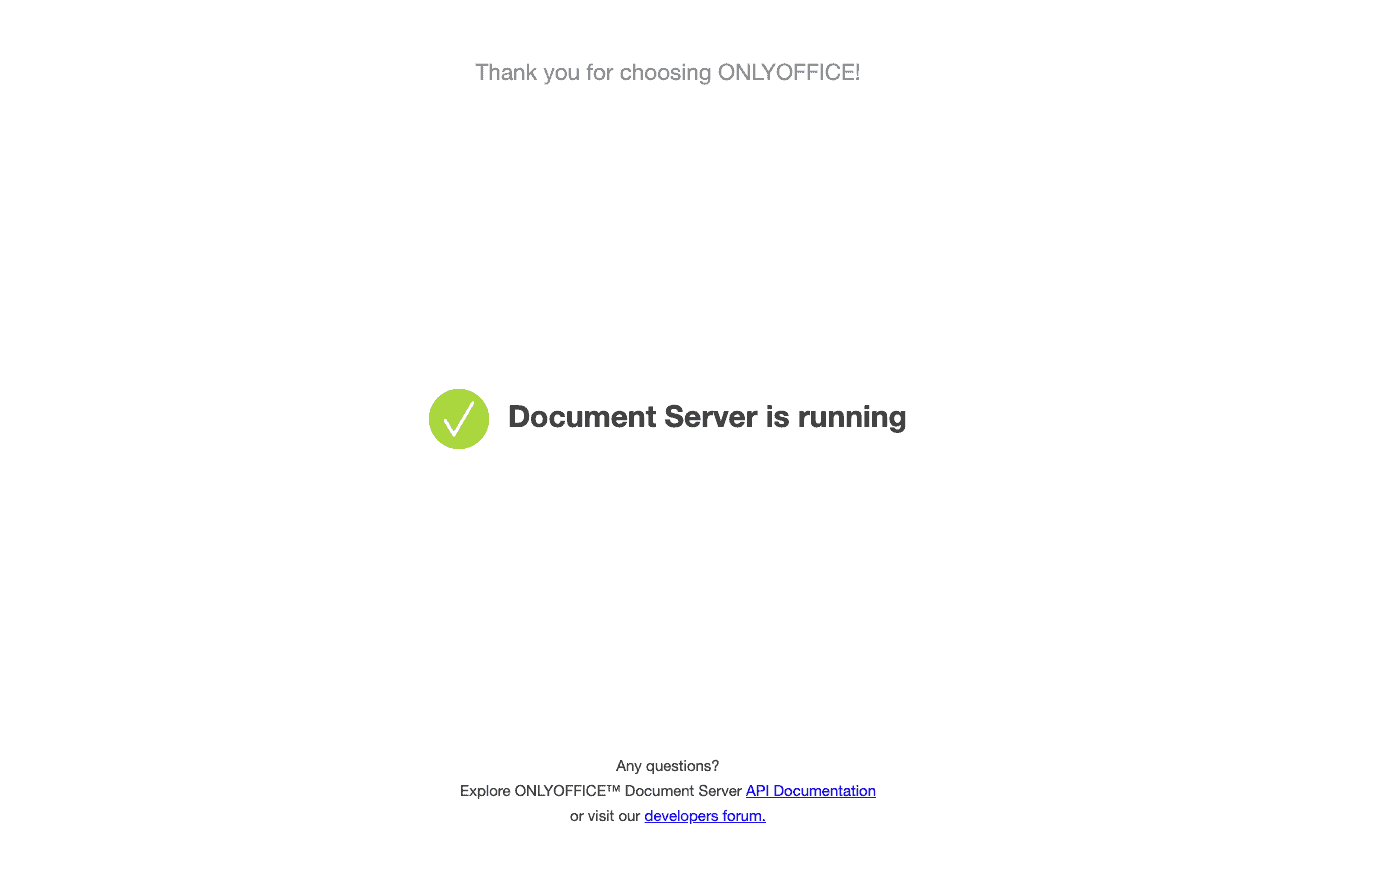 documentServer-running.png